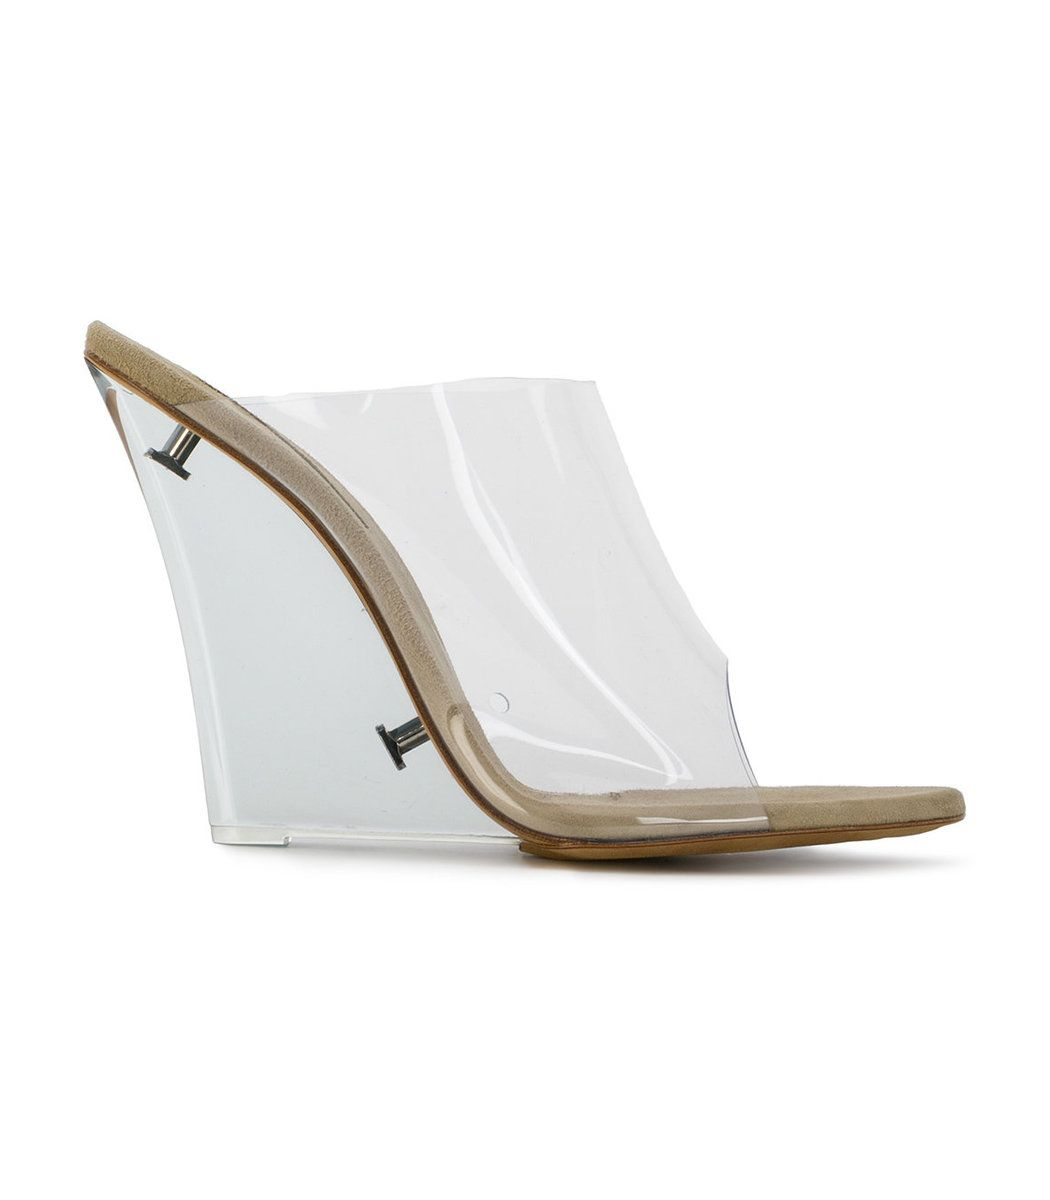 d799b0ca2 YEEZY Clear Pvc Wedge Mules.  yeezy  shoes